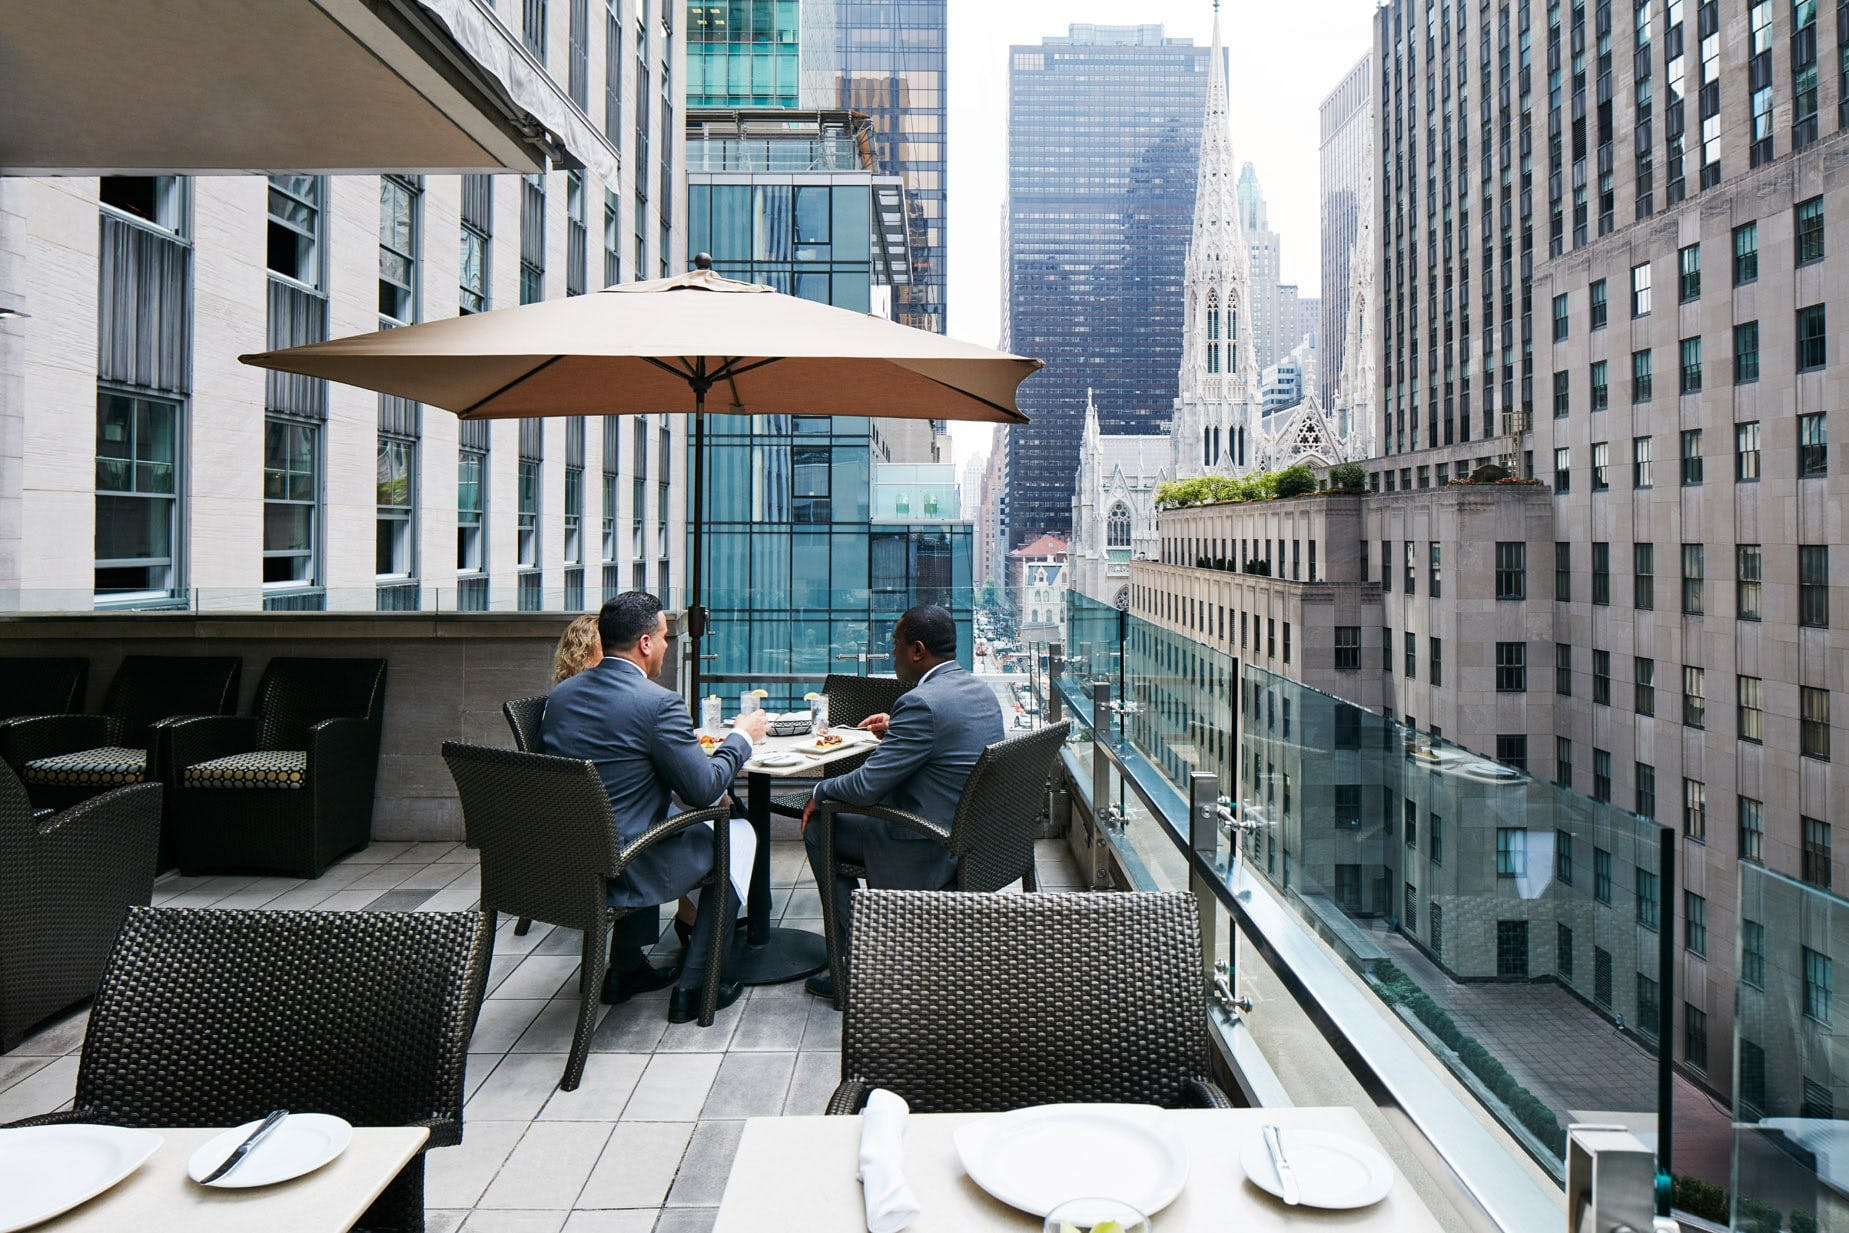 The Terrace Club at Club Quarters Hotel, Rockefeller Center